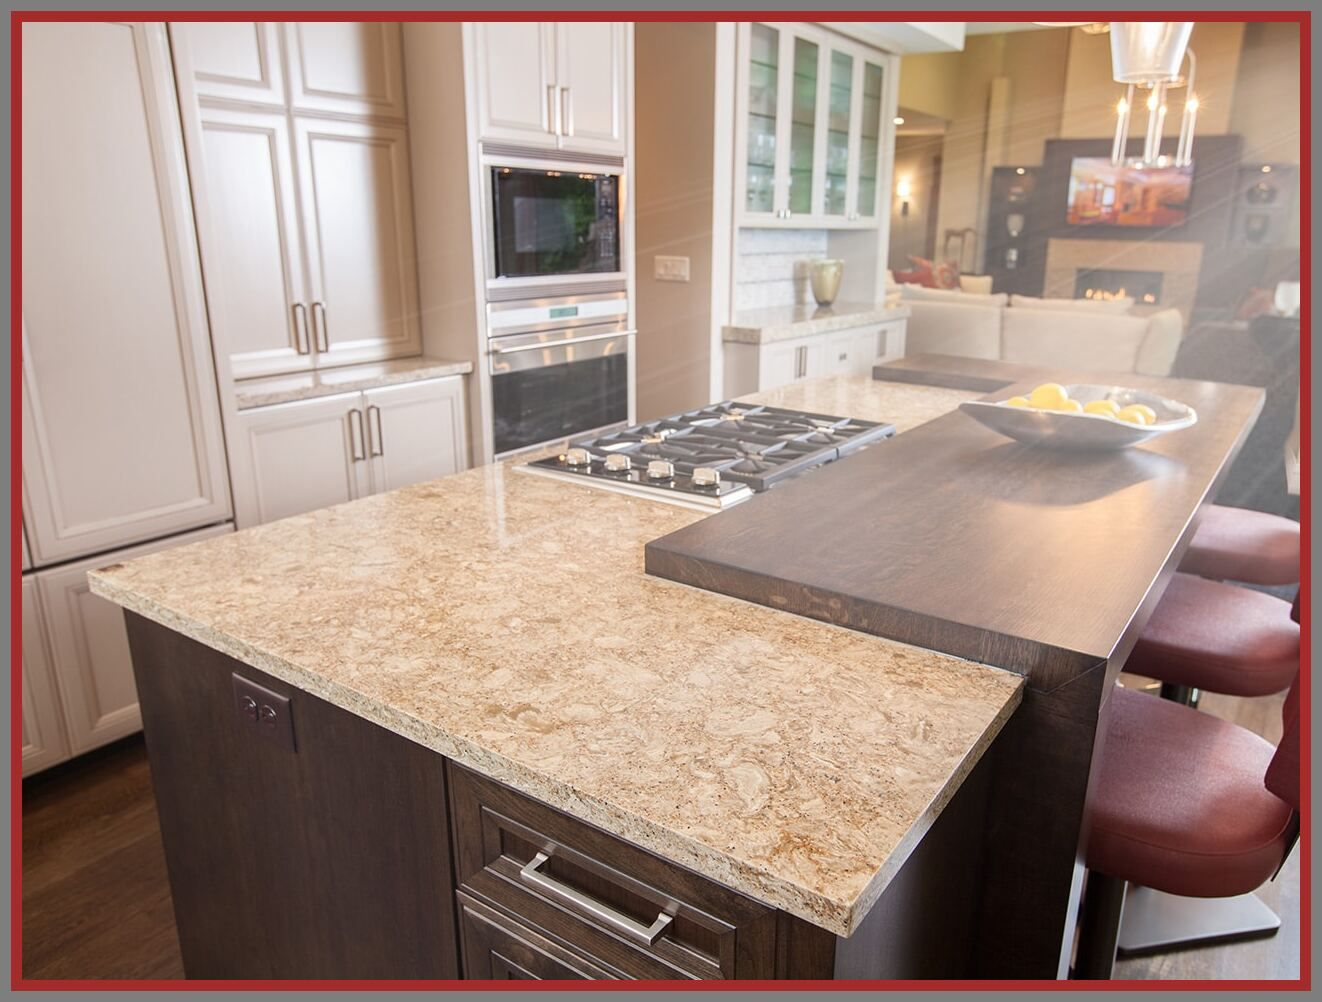 90 Reference Of Cambria Crowndale Countertops In 2020 Kitchen Countertops Quartz Kitchen Cambria Quartz